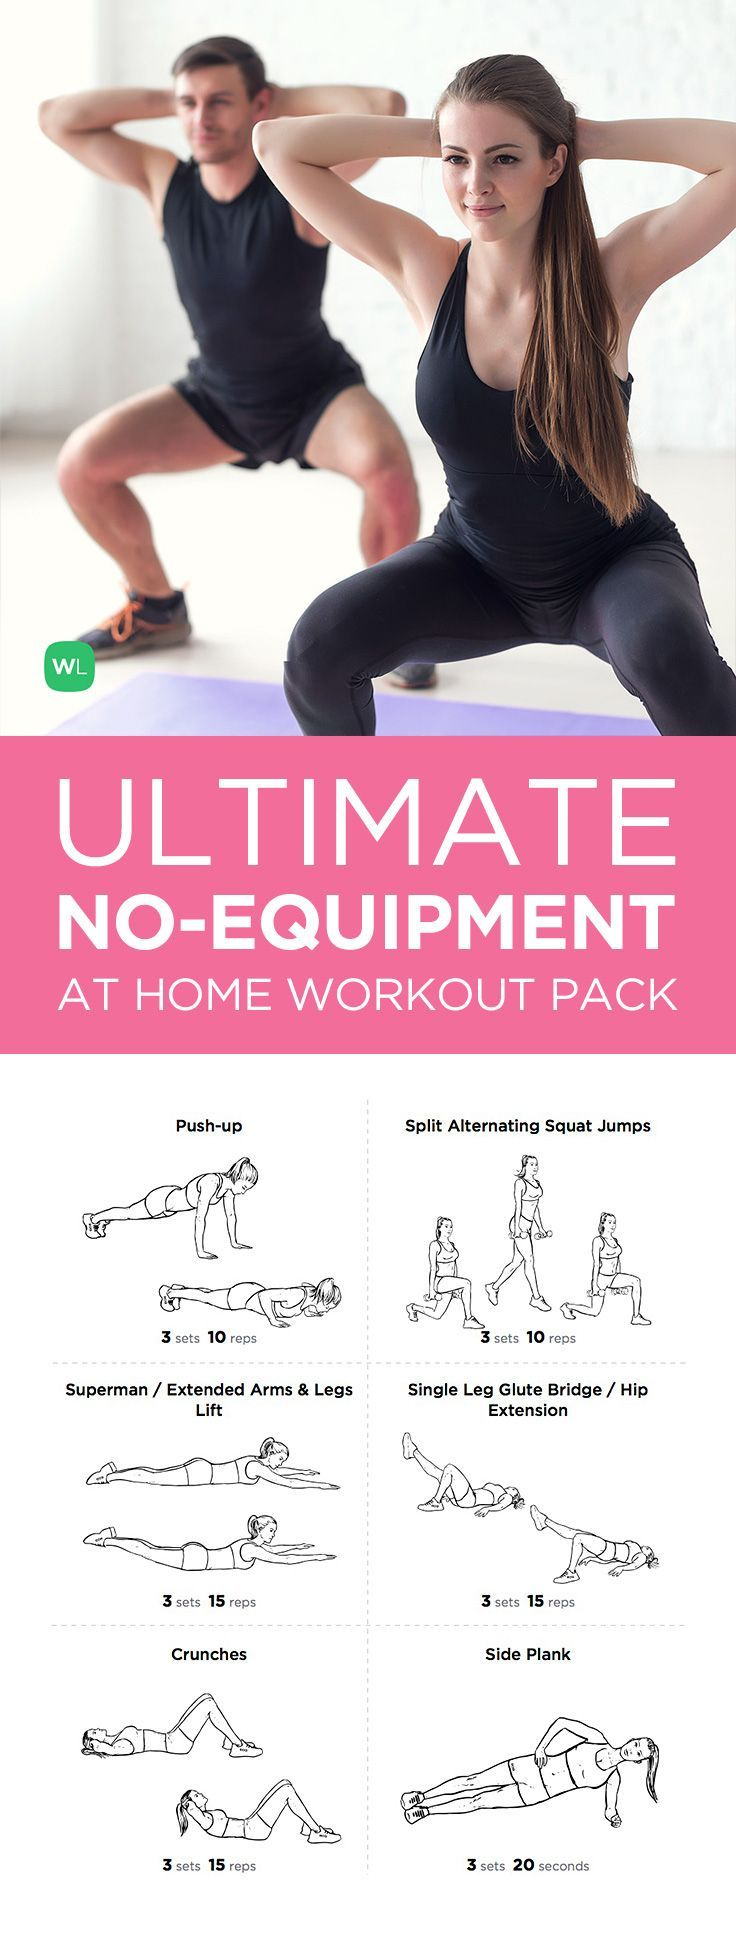 Ultimate at Home No Equipment Printable Workout Pack – visit https://workoutlabs.com/workout-packs/ultimate-at-home-no-equipment-workout-pack-for-men-women/ to download!